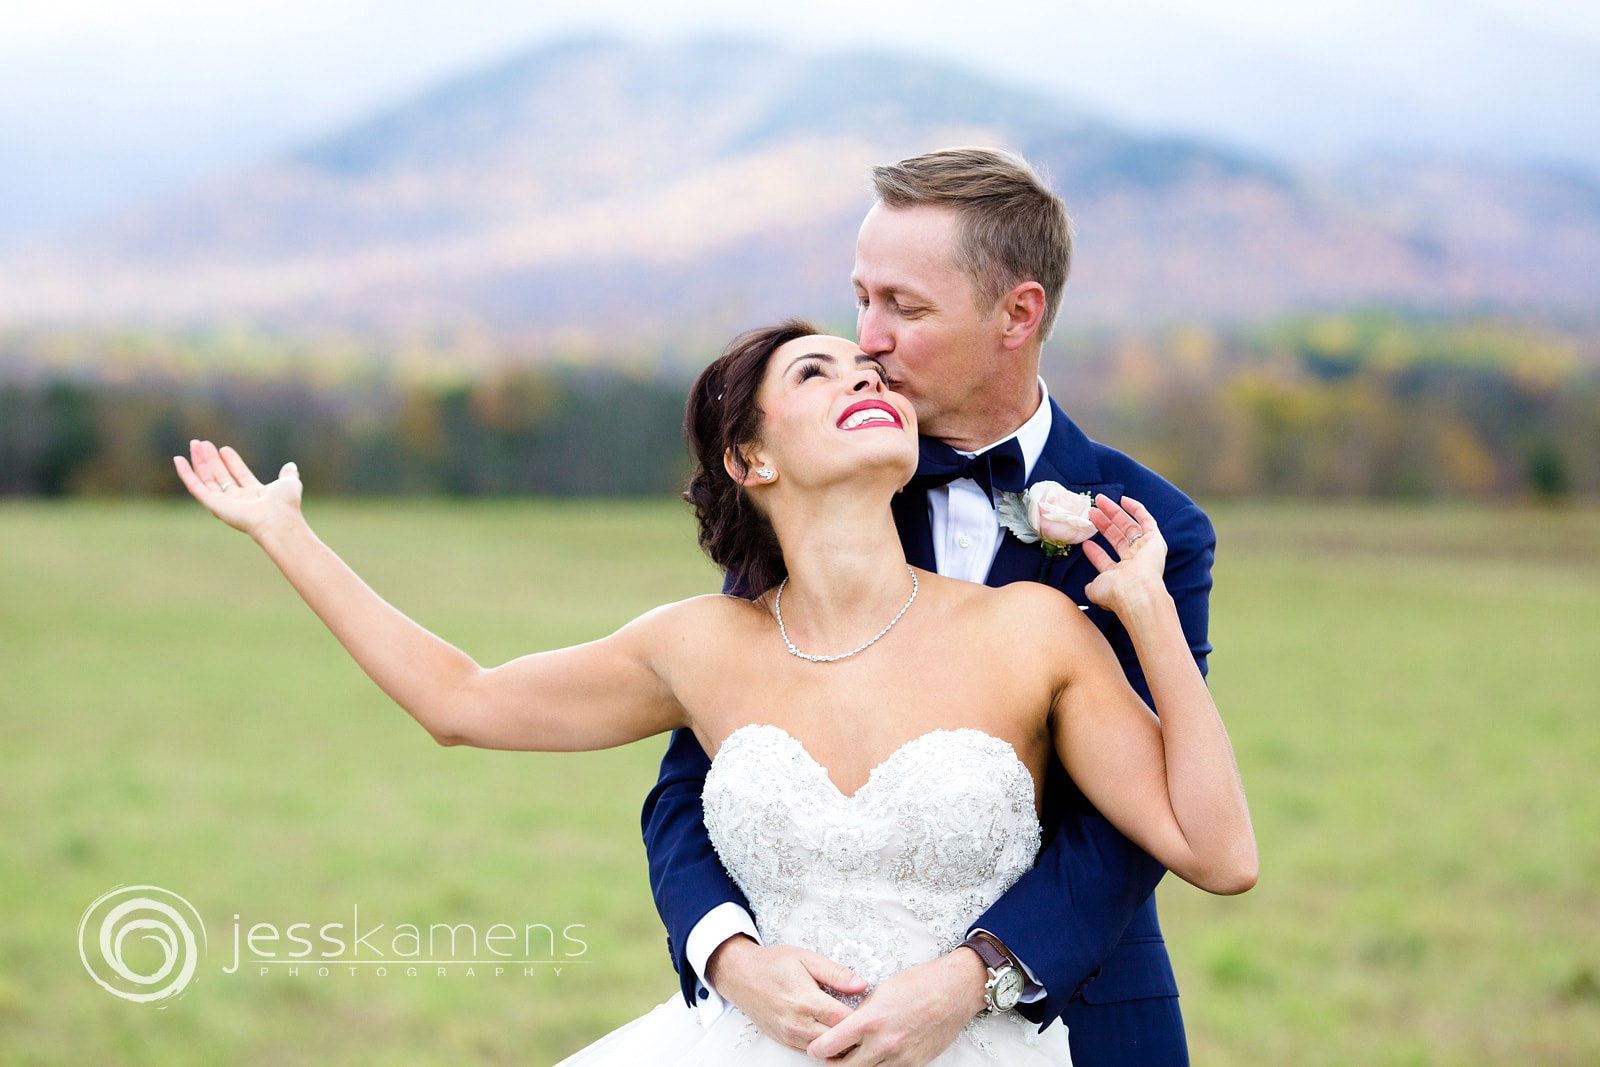 This beautiful destination wedding was in lake placid new york and you can see the mountains in the background. The groom is hugging the bride and this was taken by a destination photographer in new york